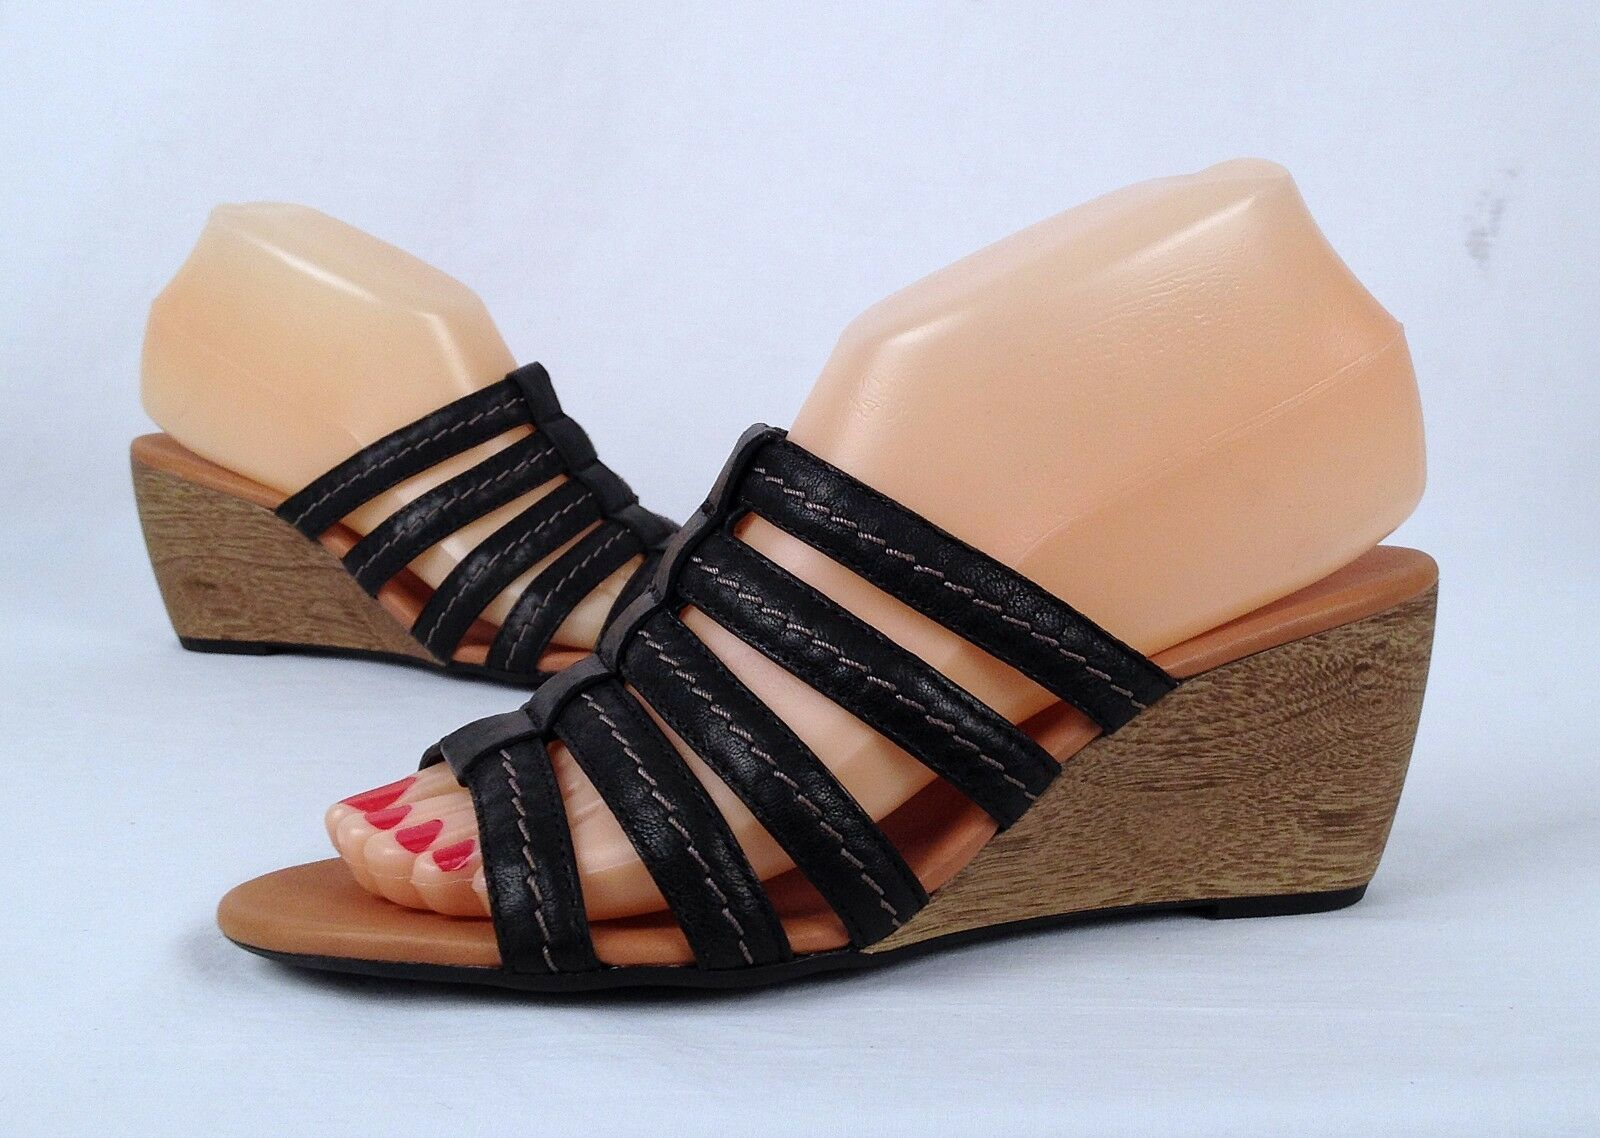 New   Paul Green 'Pasadena' Sandal- Black- Choose Size- 285  (02)